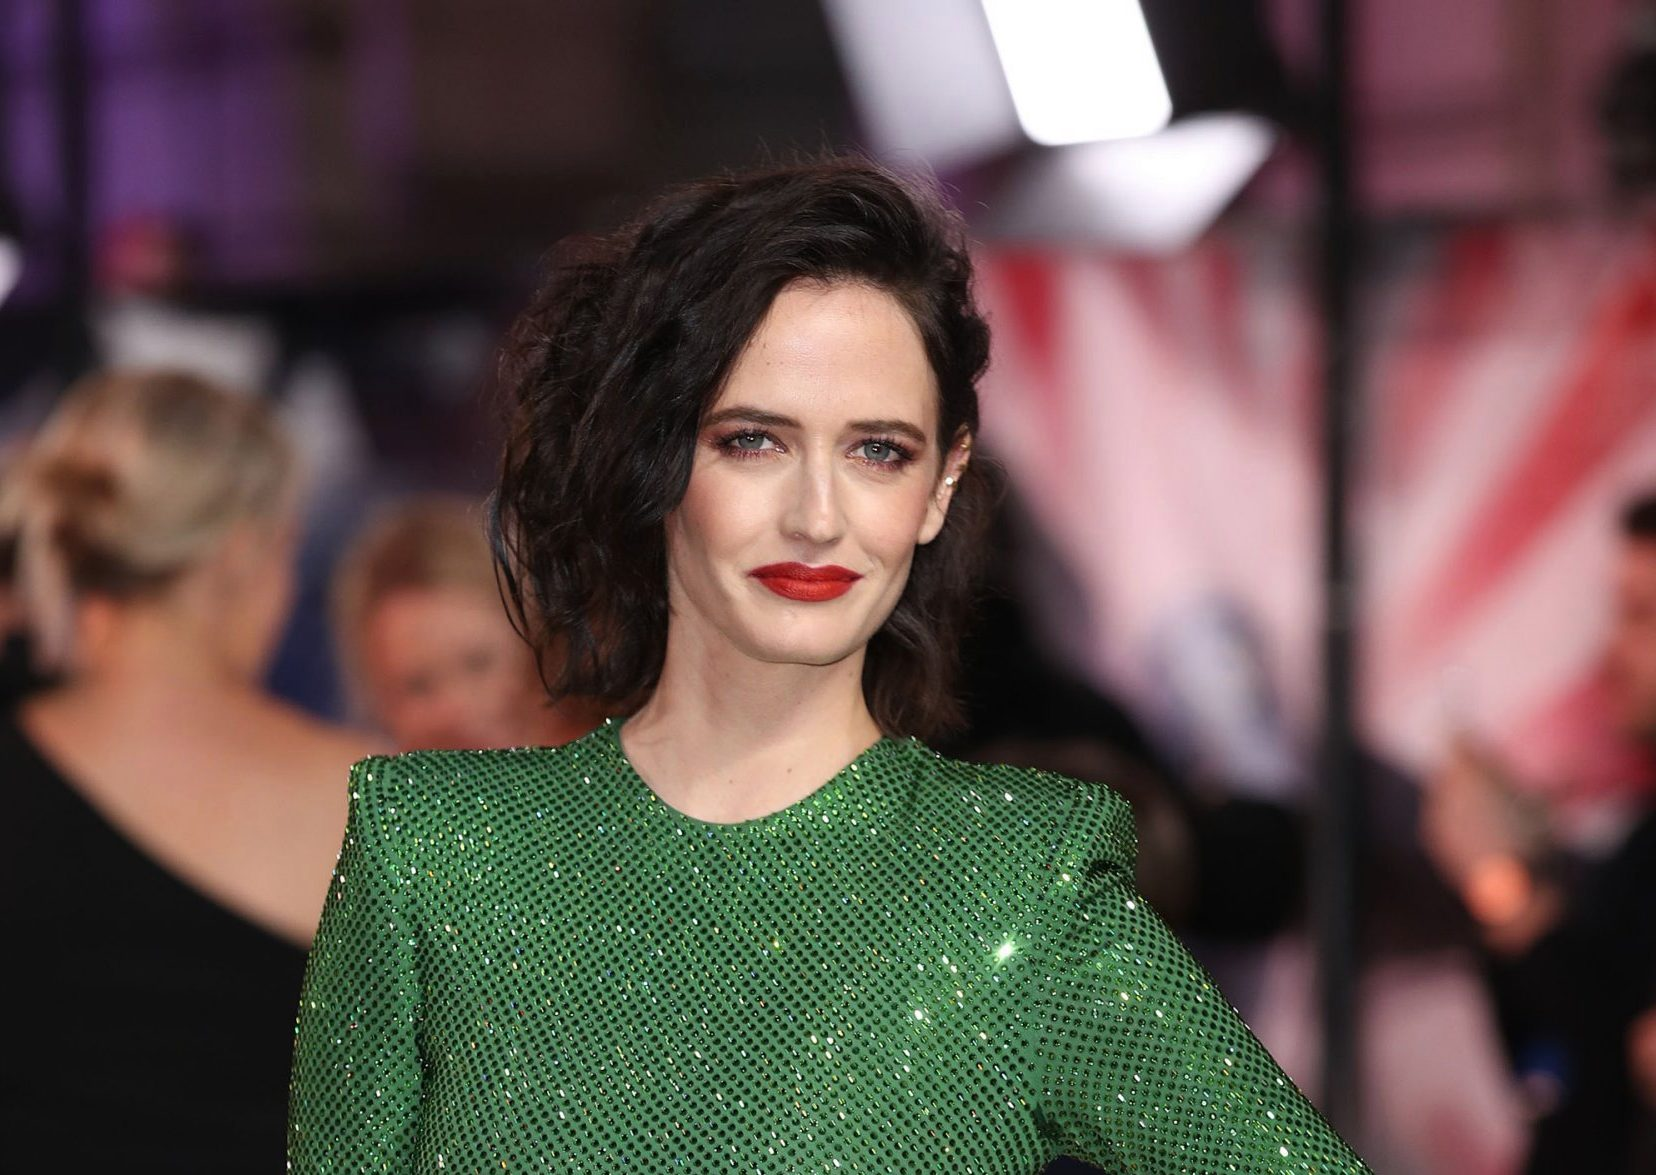 Eva Green 'thought she would die' while filming Dumbo: 'I was absolutely petrified'